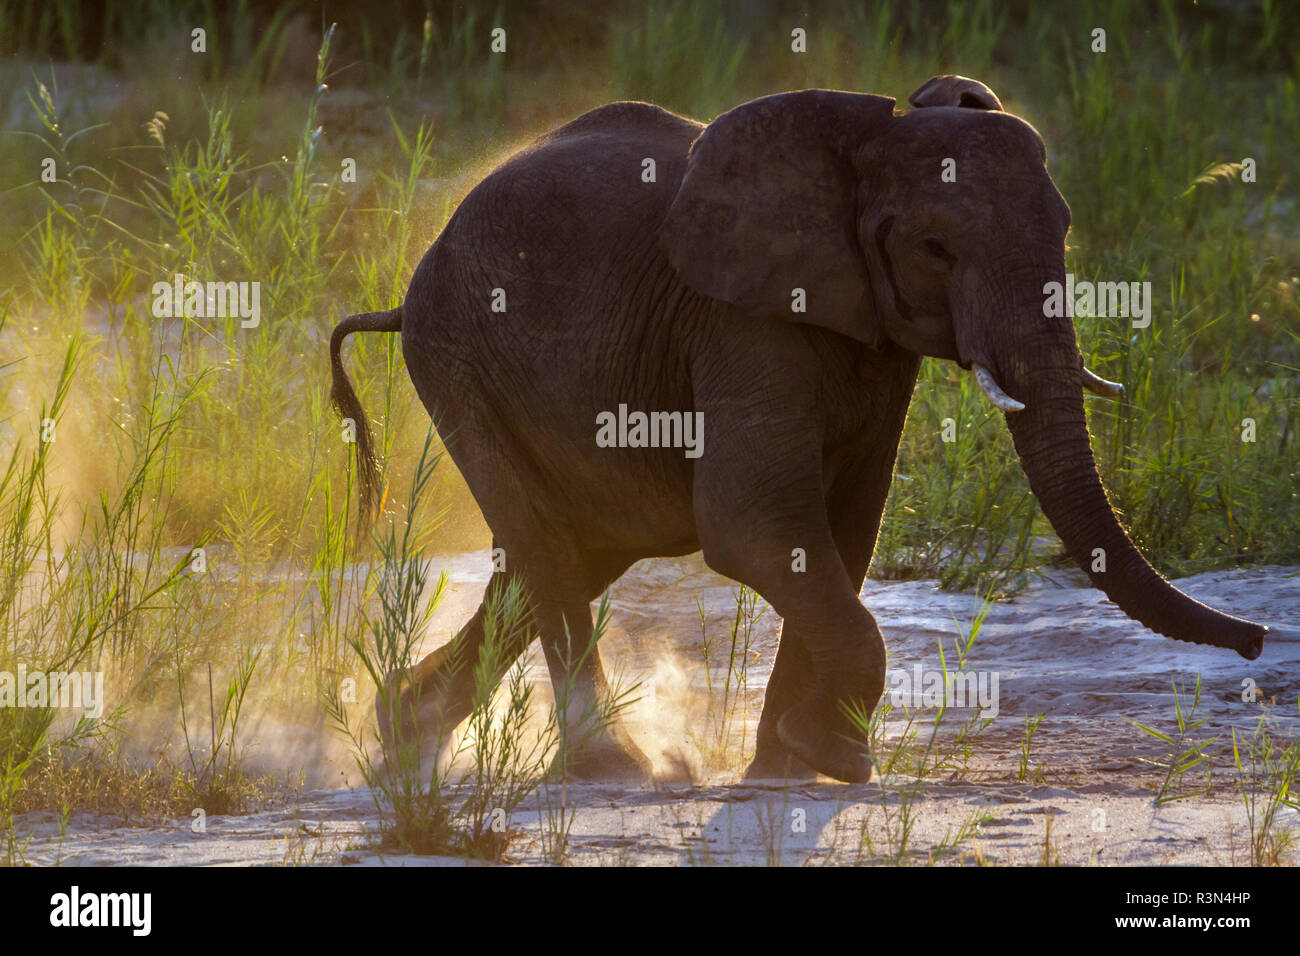 African bush elephant (Loxodonta africana) in Kruger National park, South Africa. - Stock Image